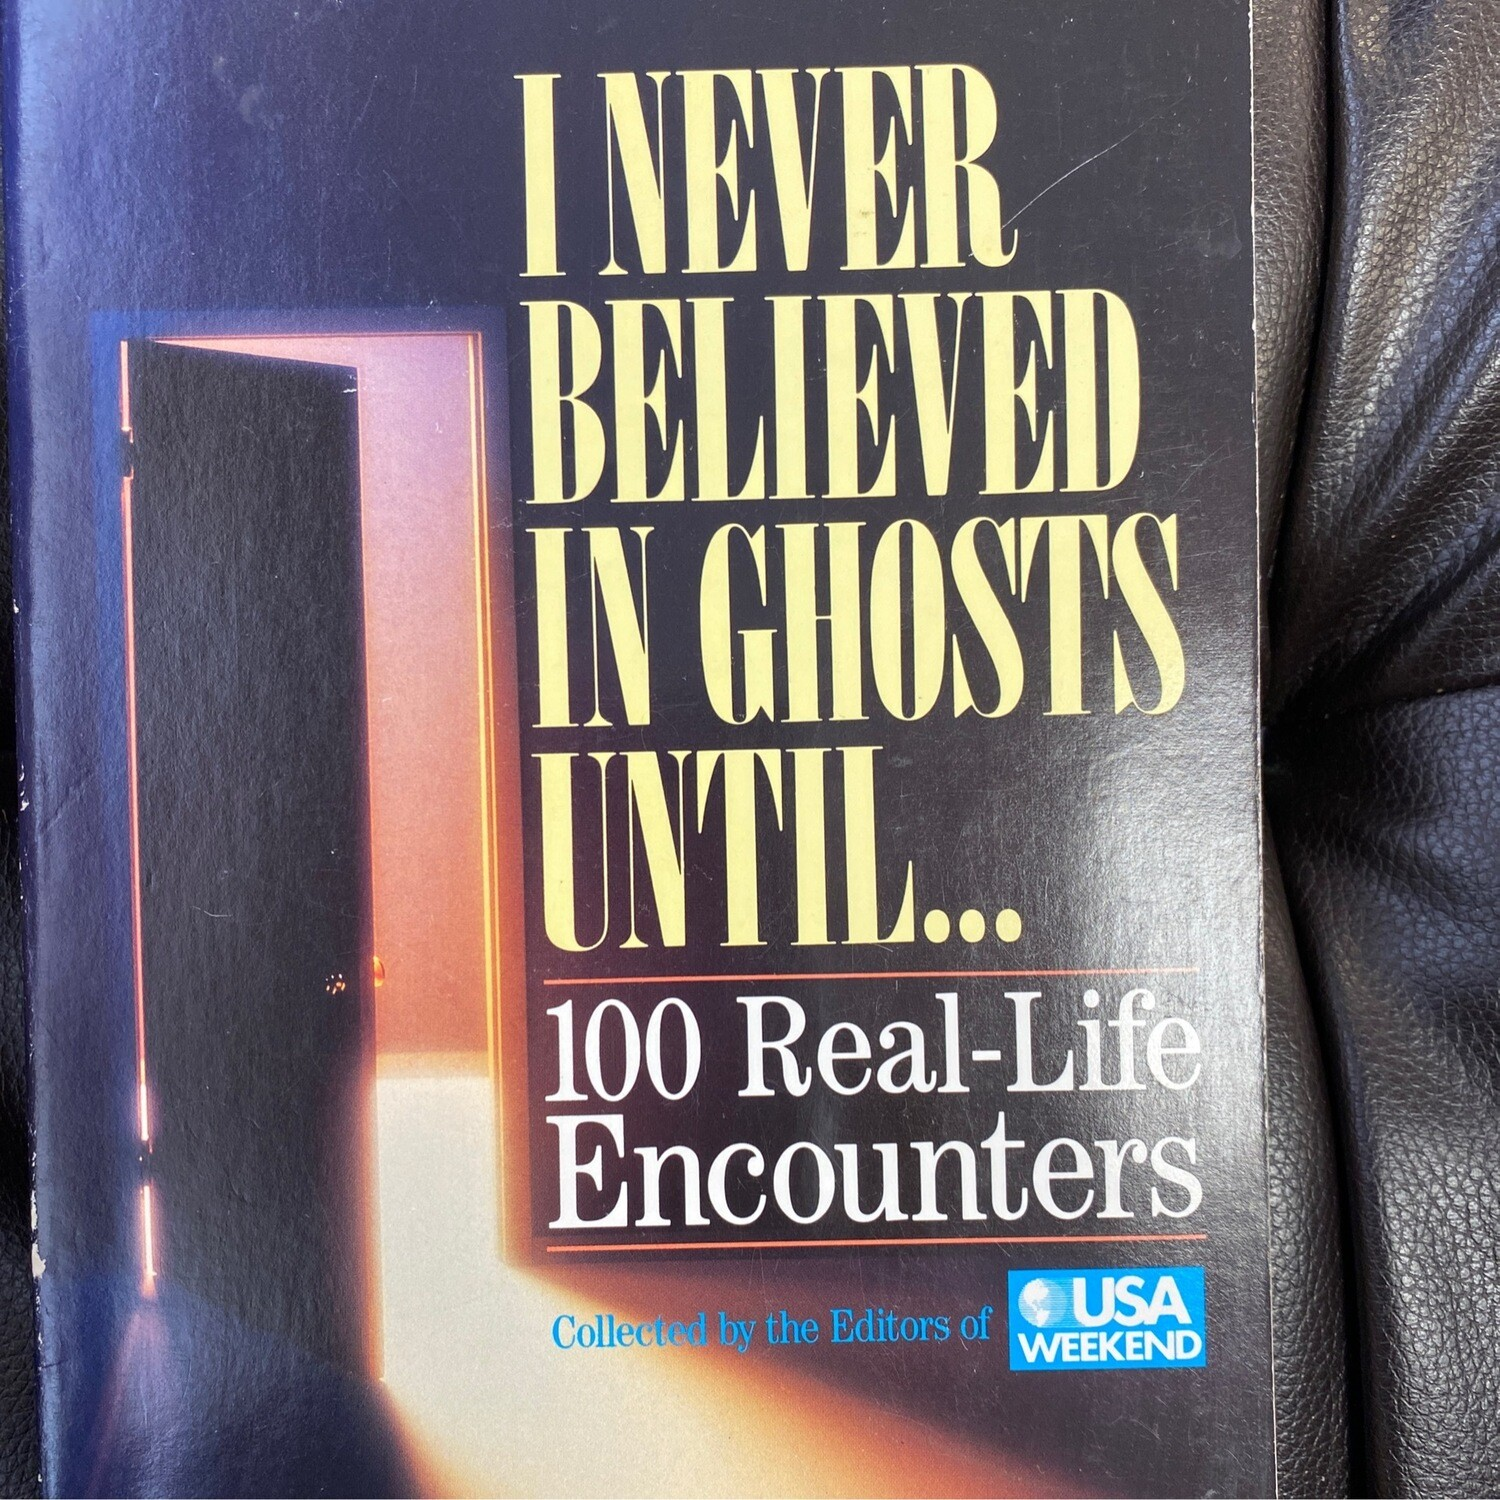 I Never Believed in Ghosts Until… 100 Real Life Encounters, A collection by the Editors of USA Weekend